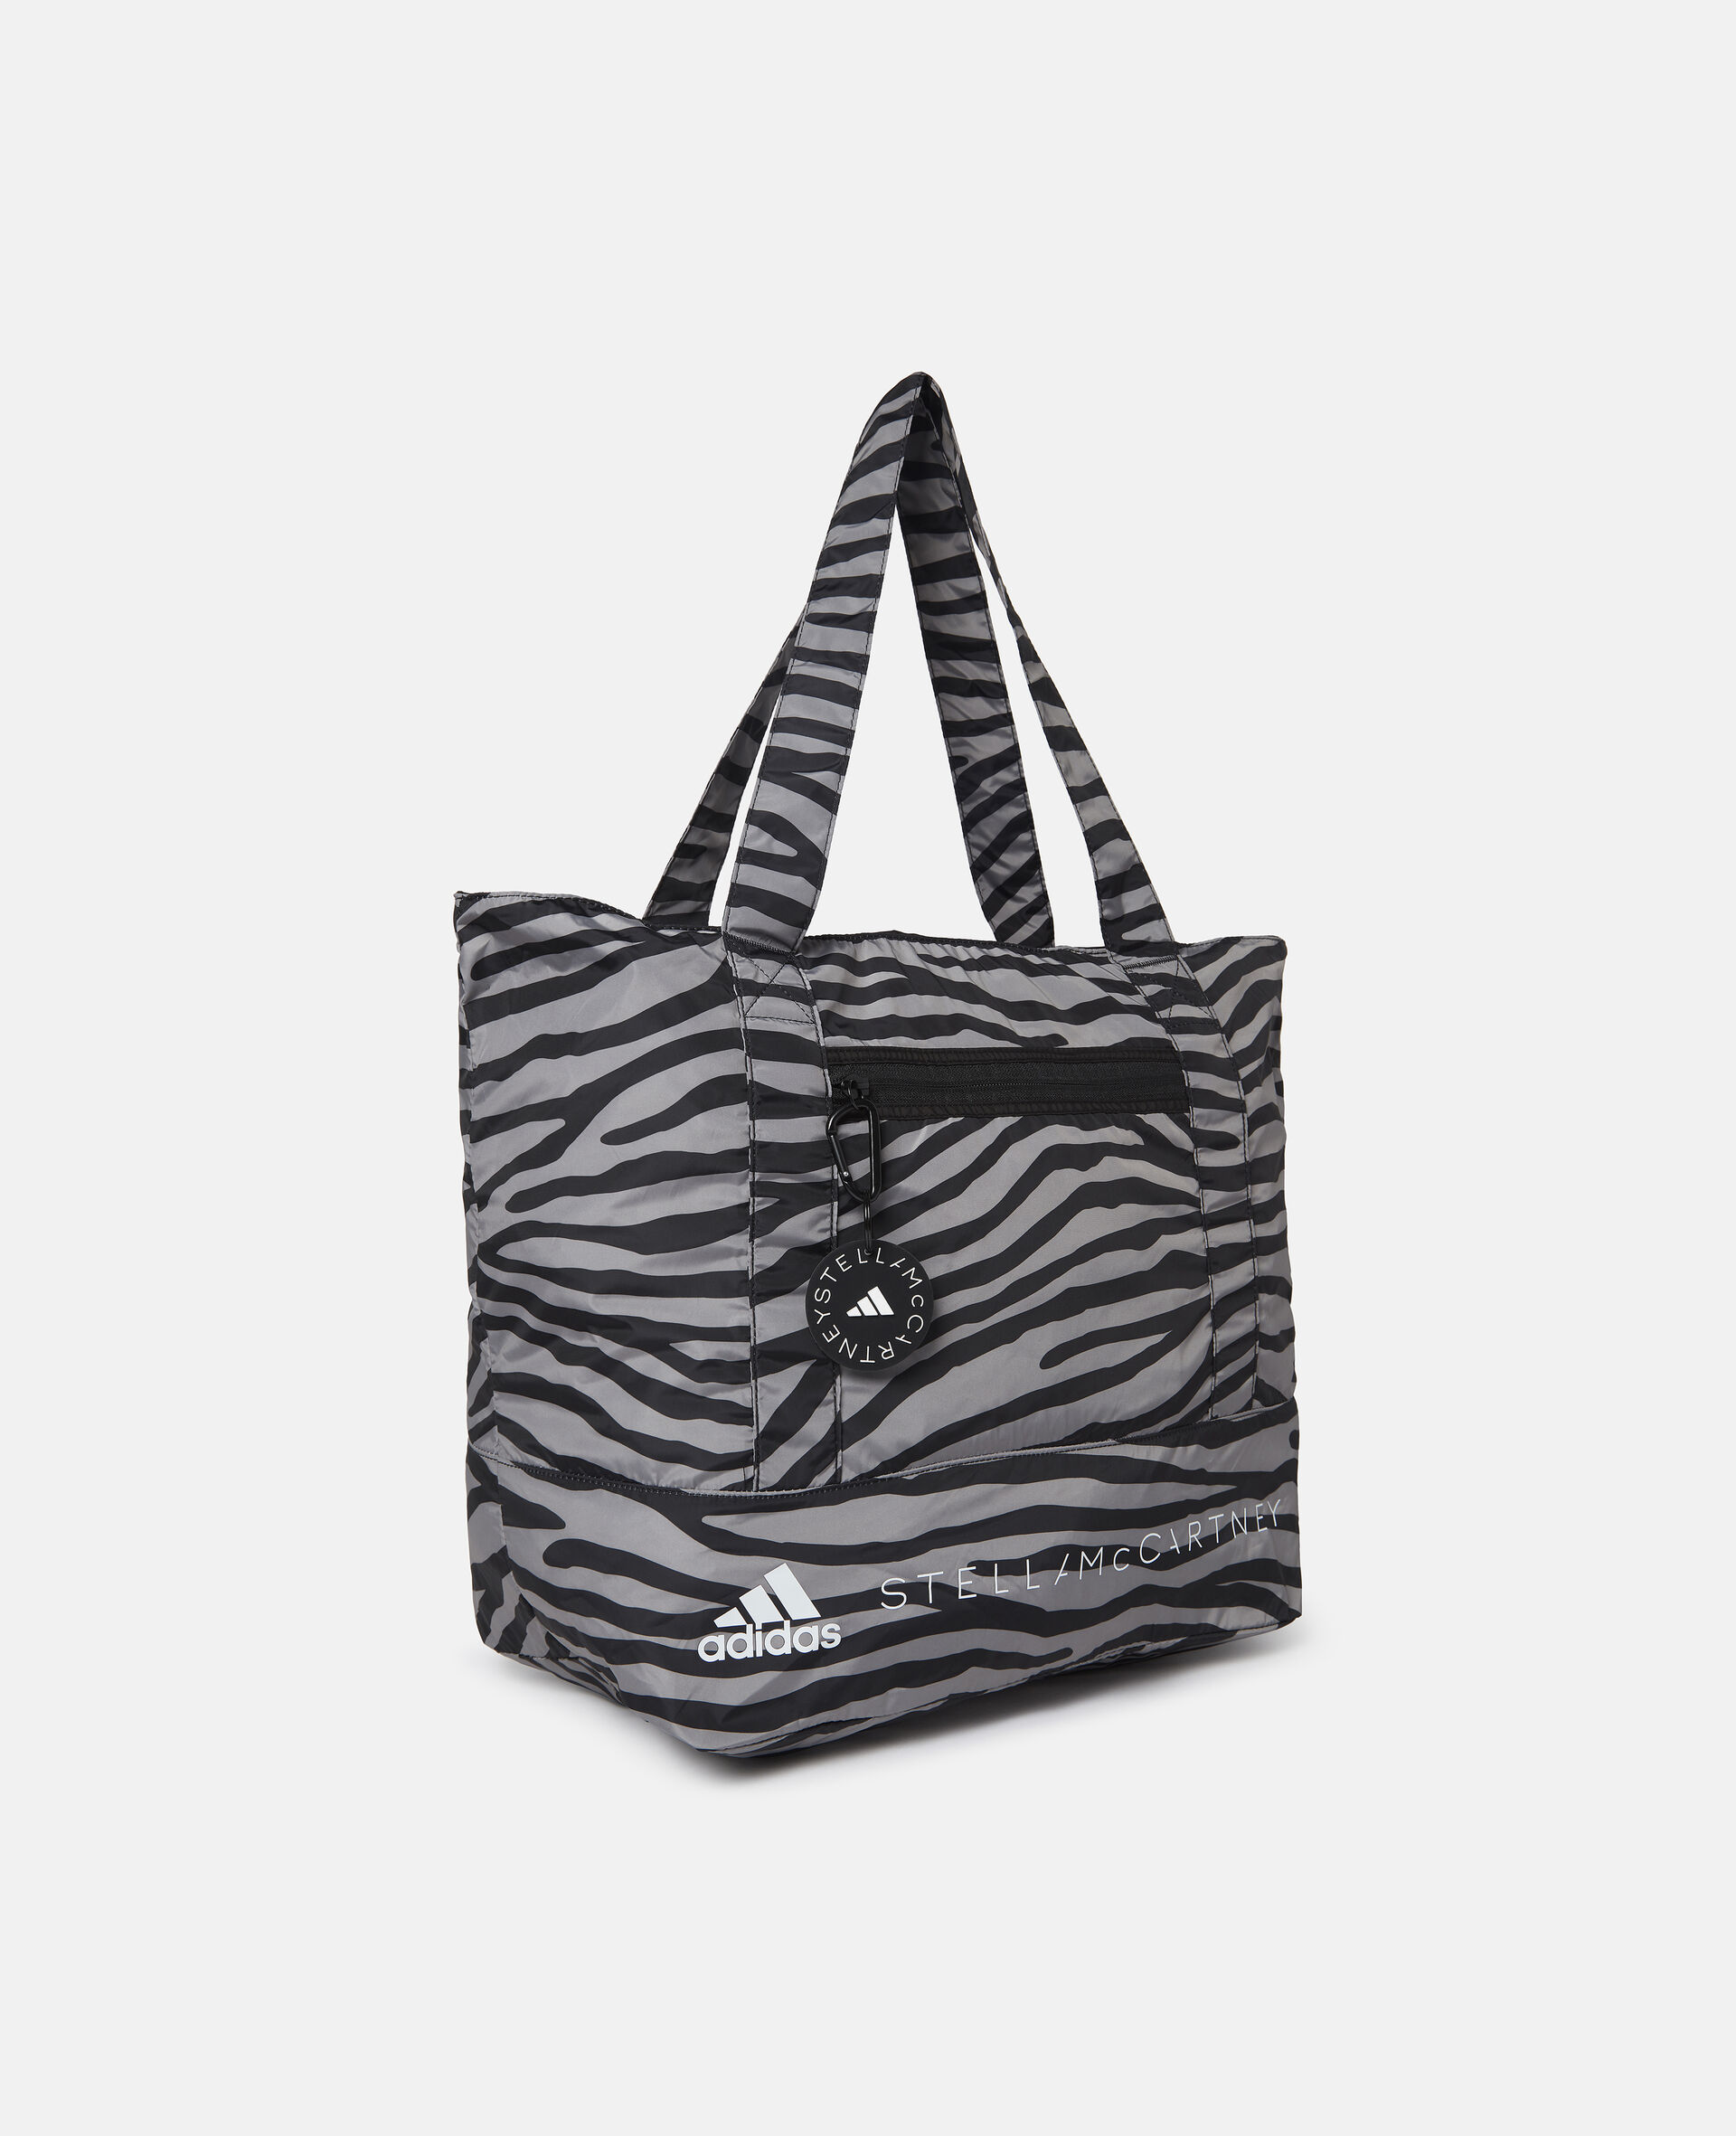 Printed Tote Bag-Multicolour-large image number 3